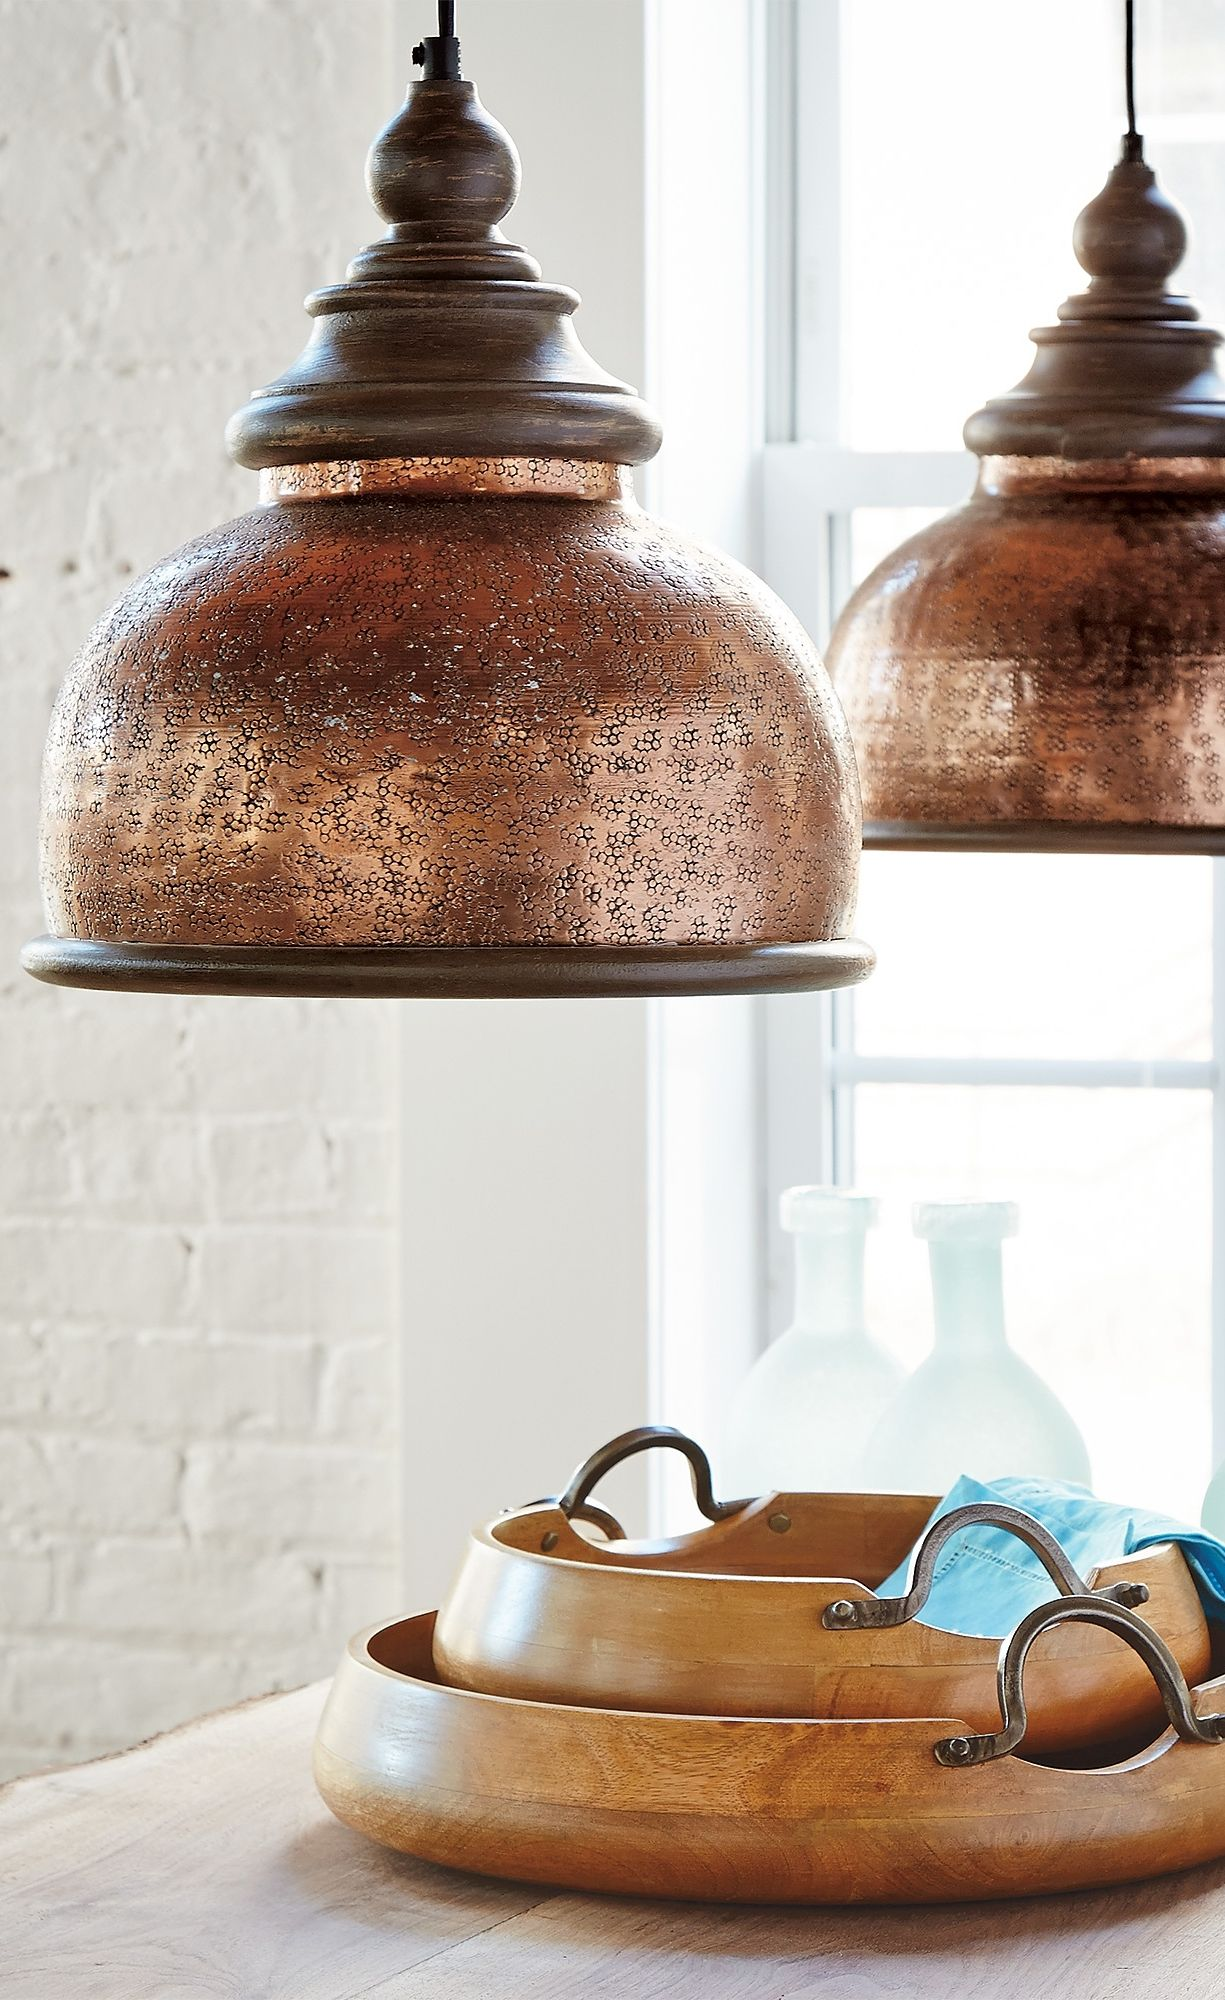 lend an antique vibe to your d繝筰cor with our brilliantly weathered